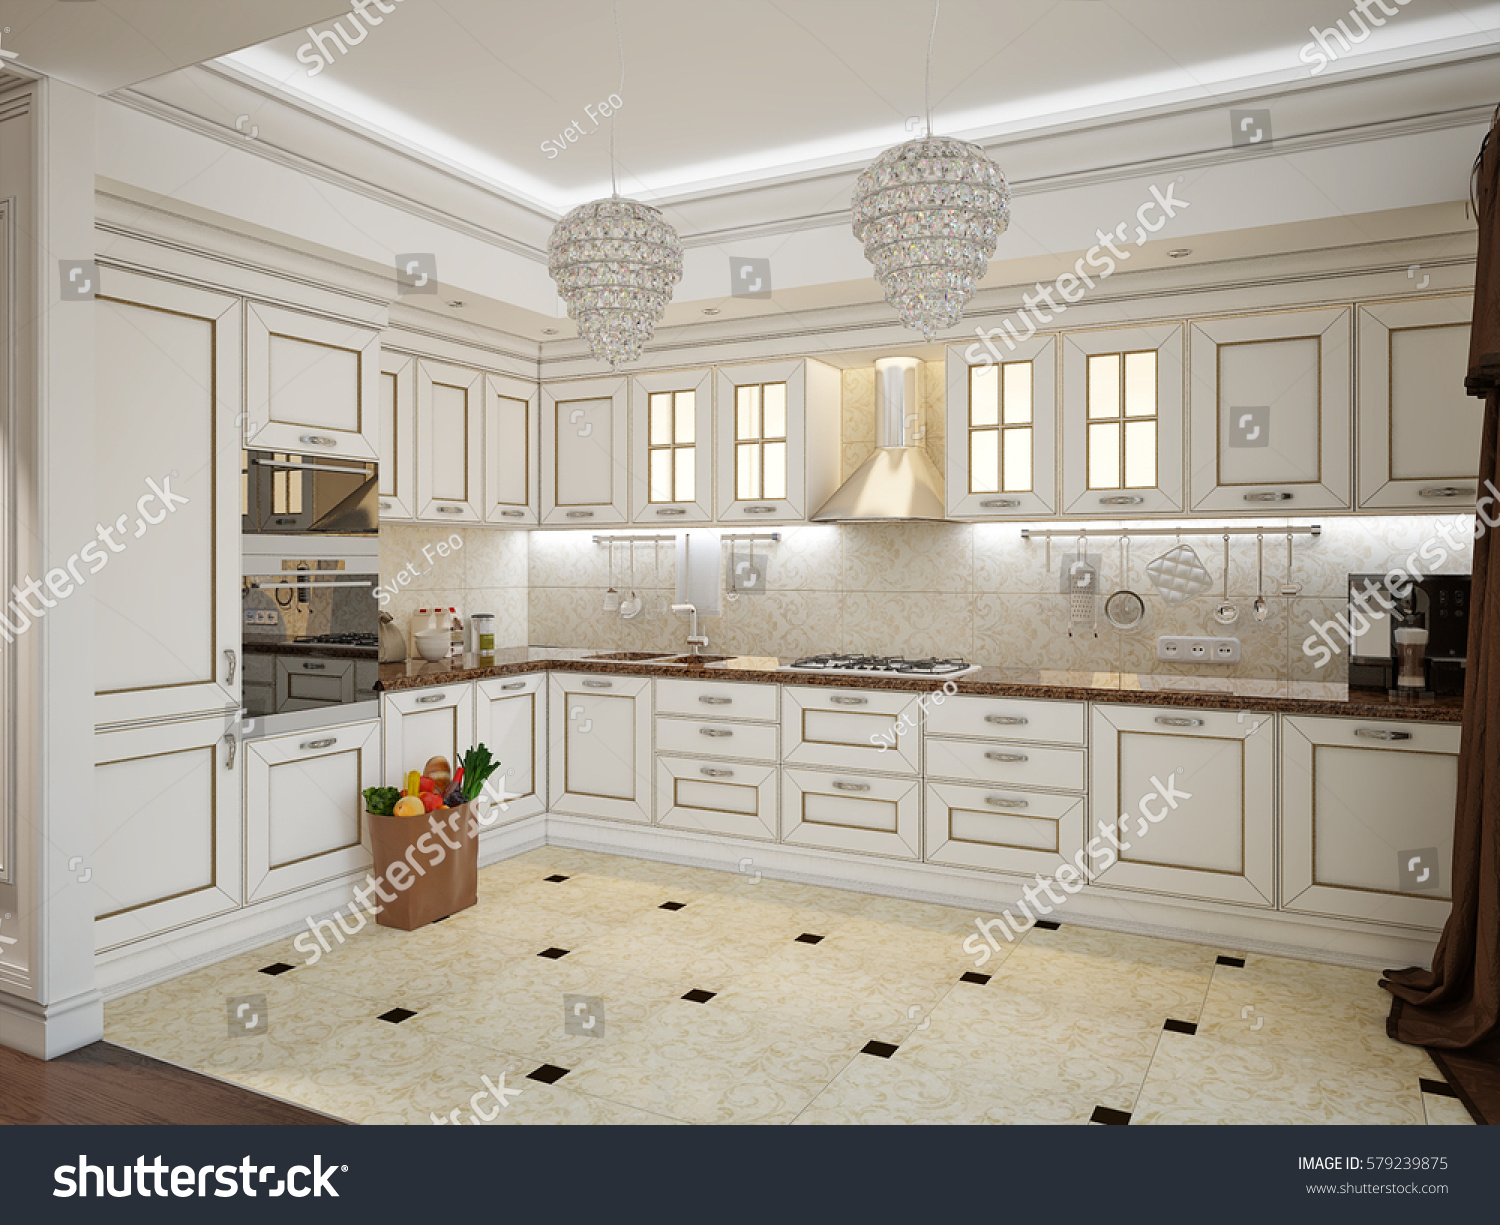 Luxury classic interior of dining room kitchen and living room with classic white furniture crystal chandeliers fireplace and white kitchen